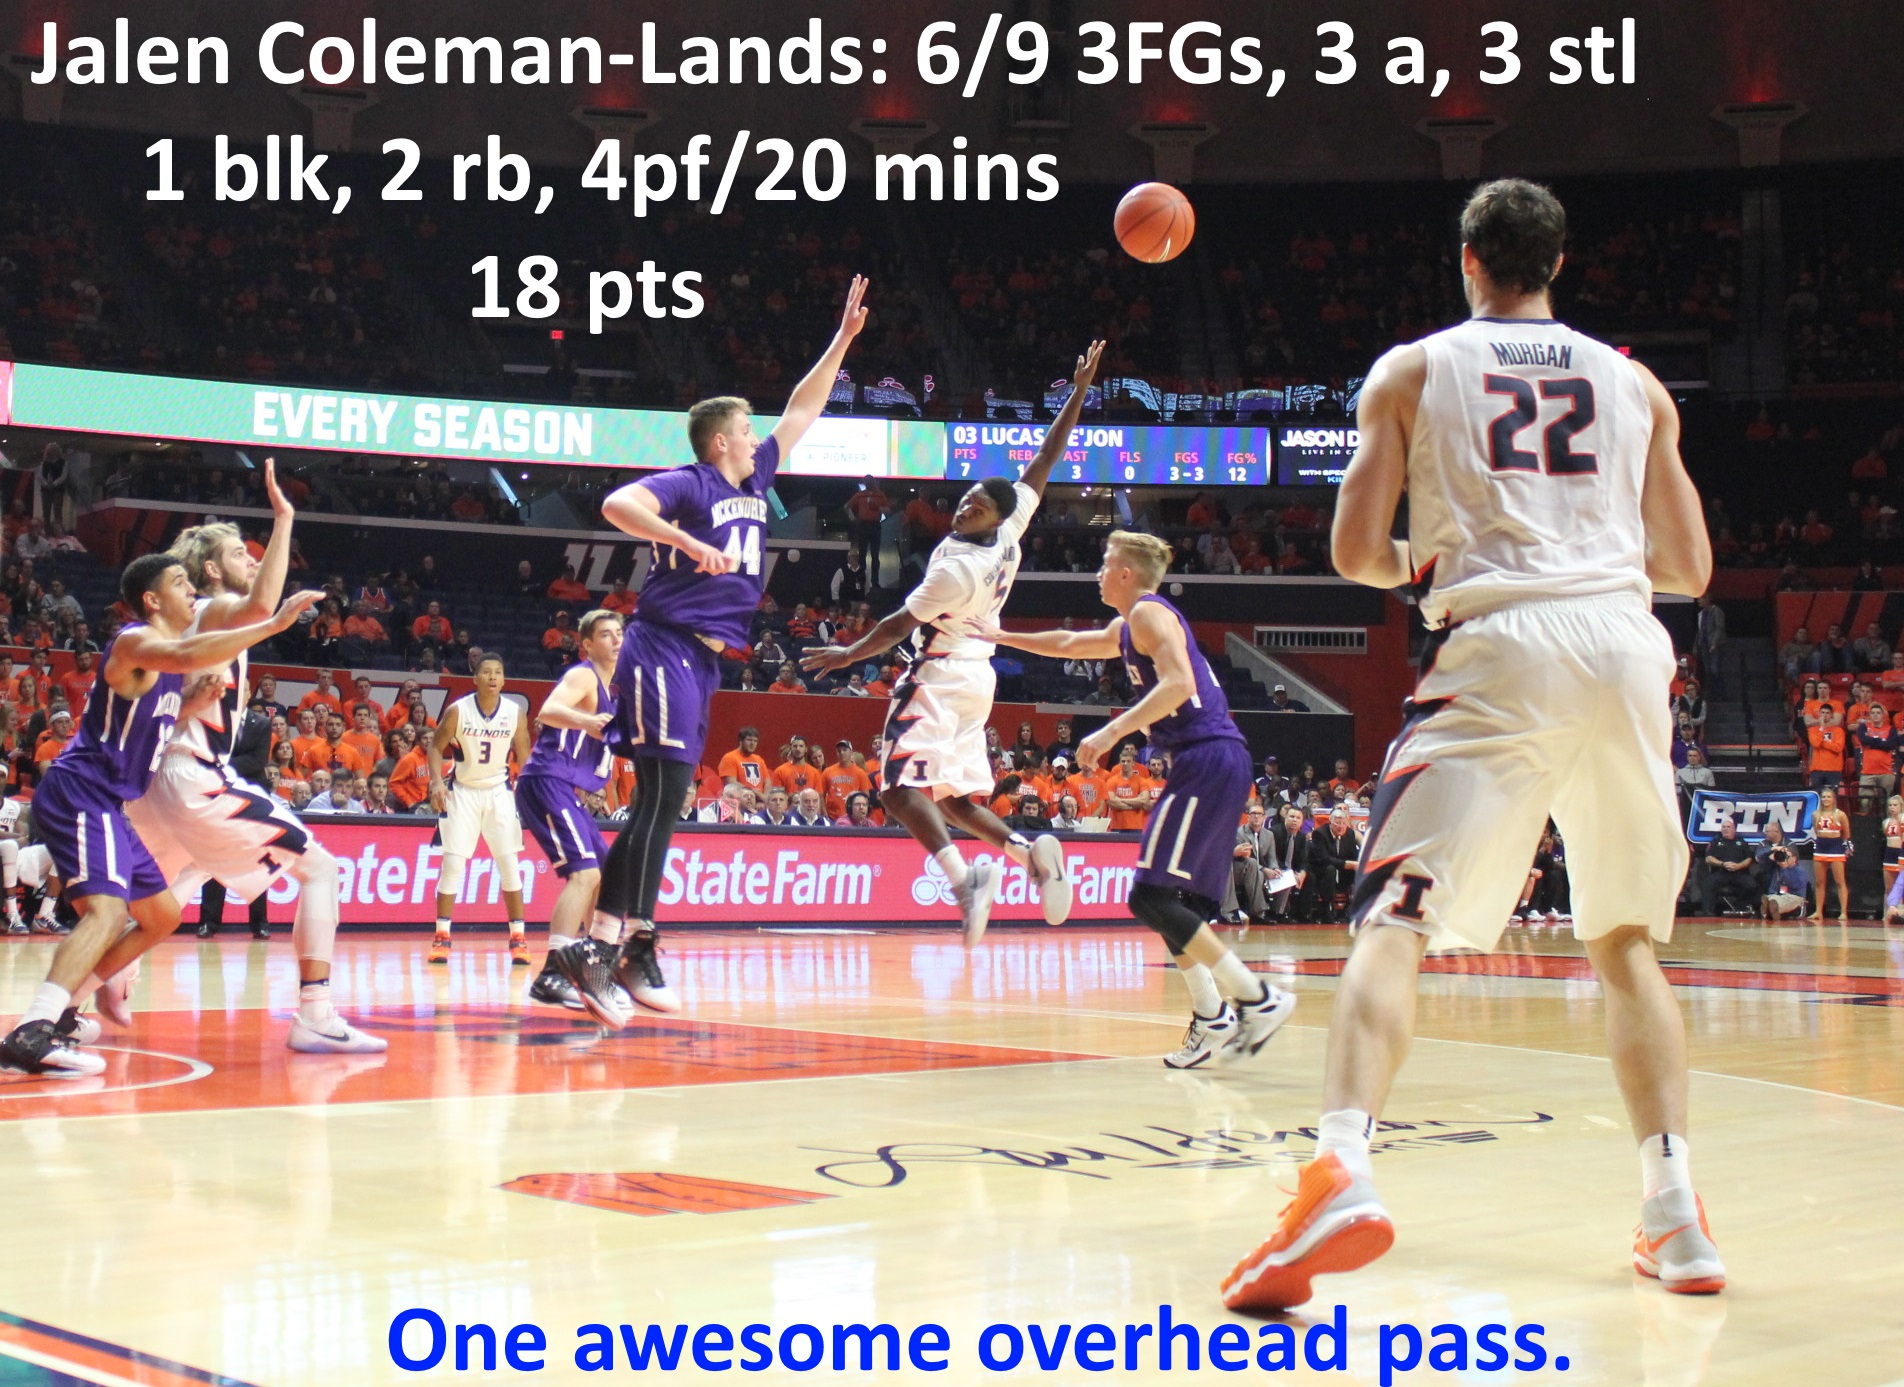 jalen-coleman-lands-stat-line-mckendree